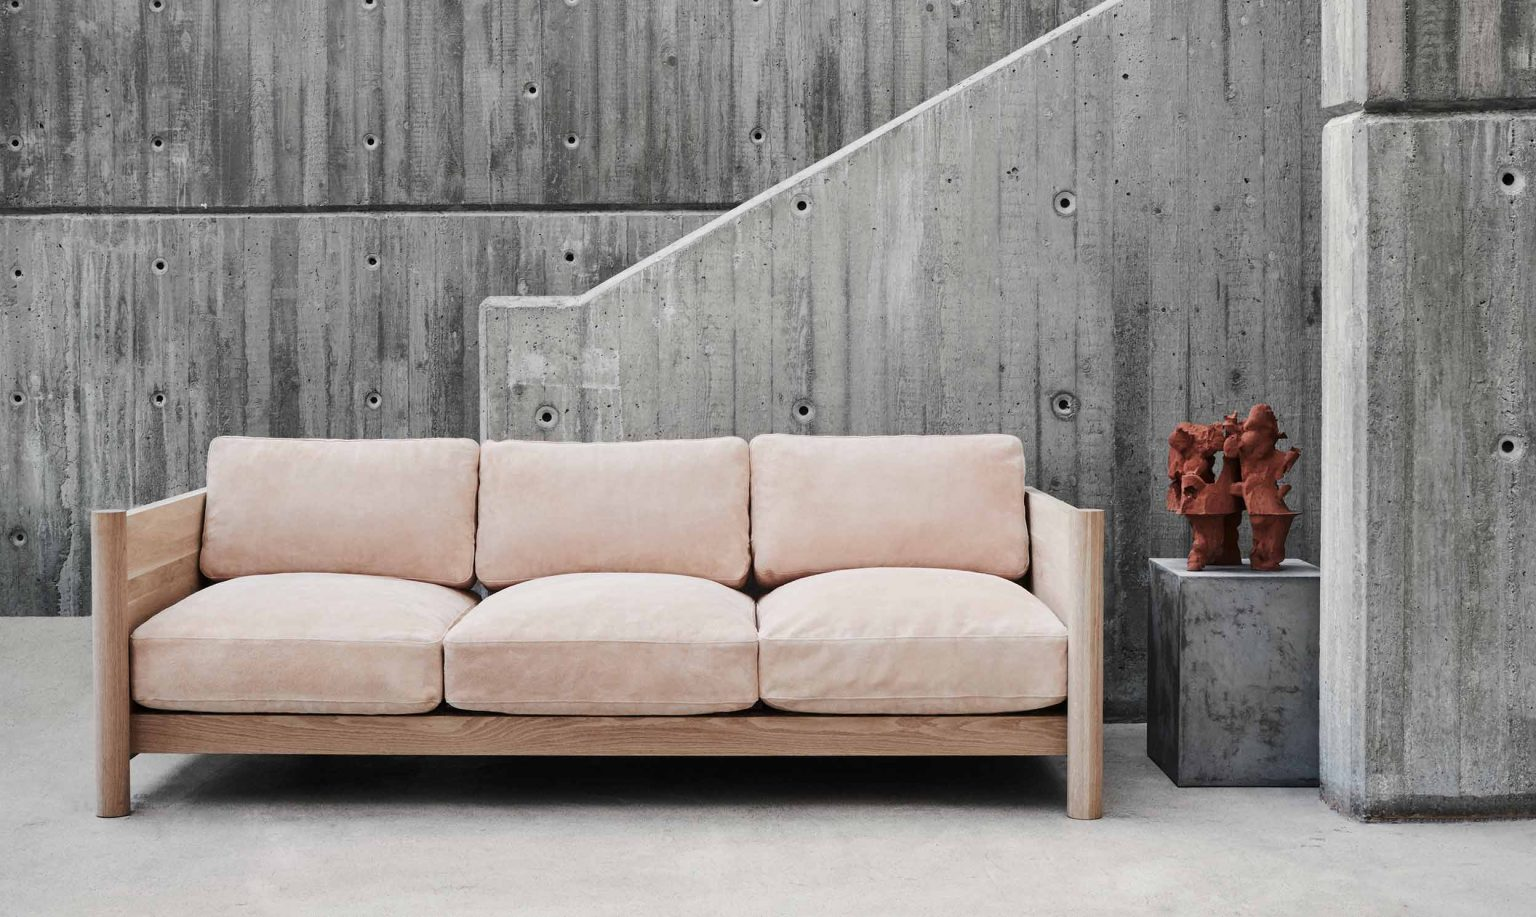 Truly a solid piece of furniture with zero superfluity by Mia Cullin – Verk - ScandinavianDesign.com